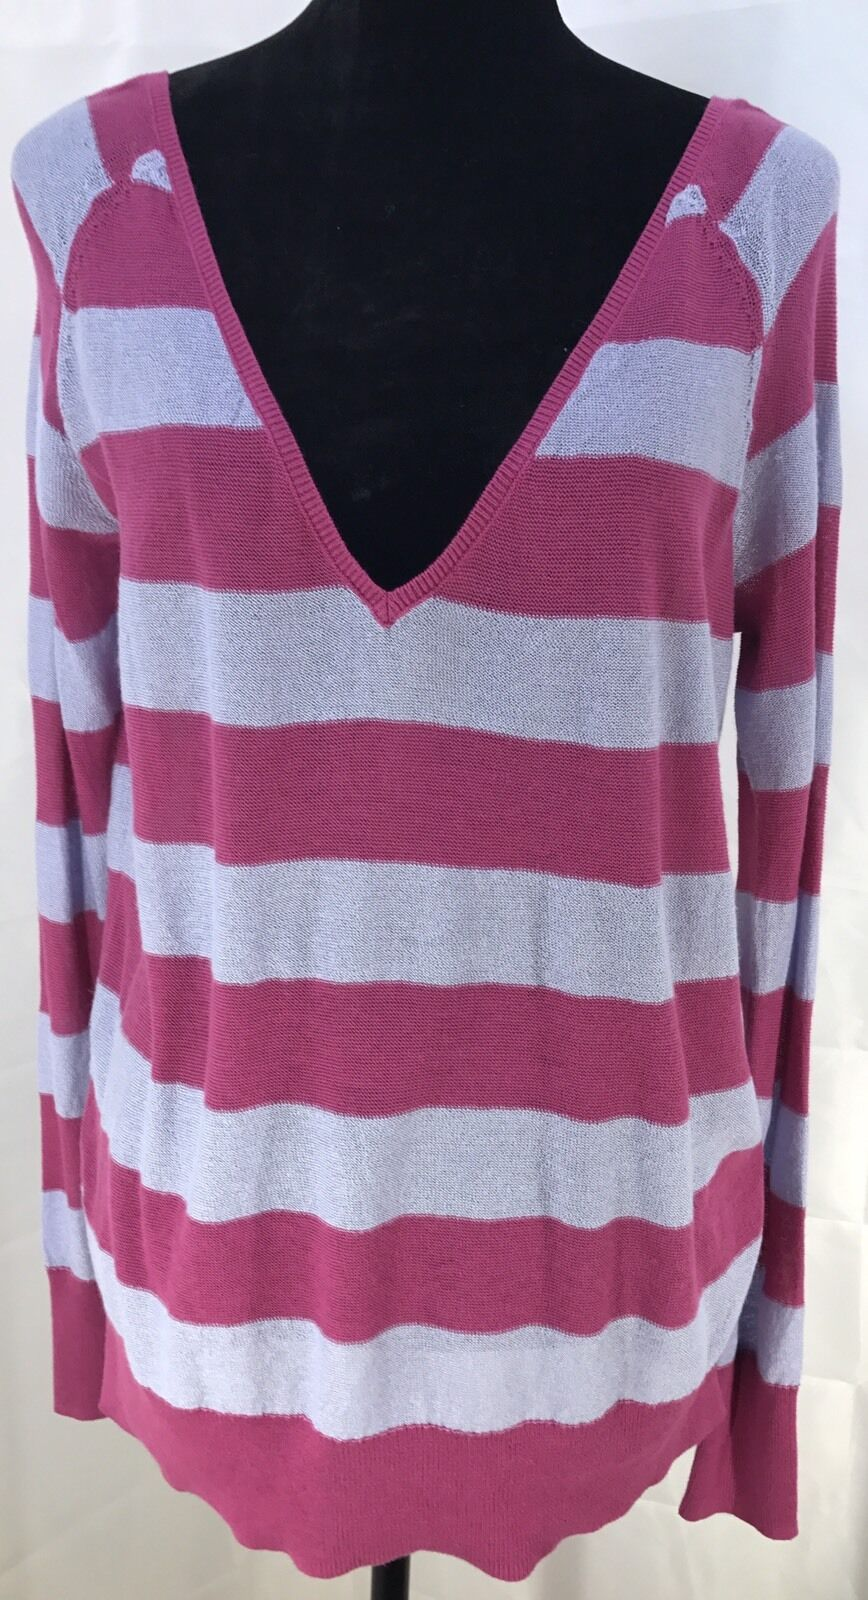 Free People Light Knitted Long Sleeve Sweater Shirt In Size S Pink And purplec